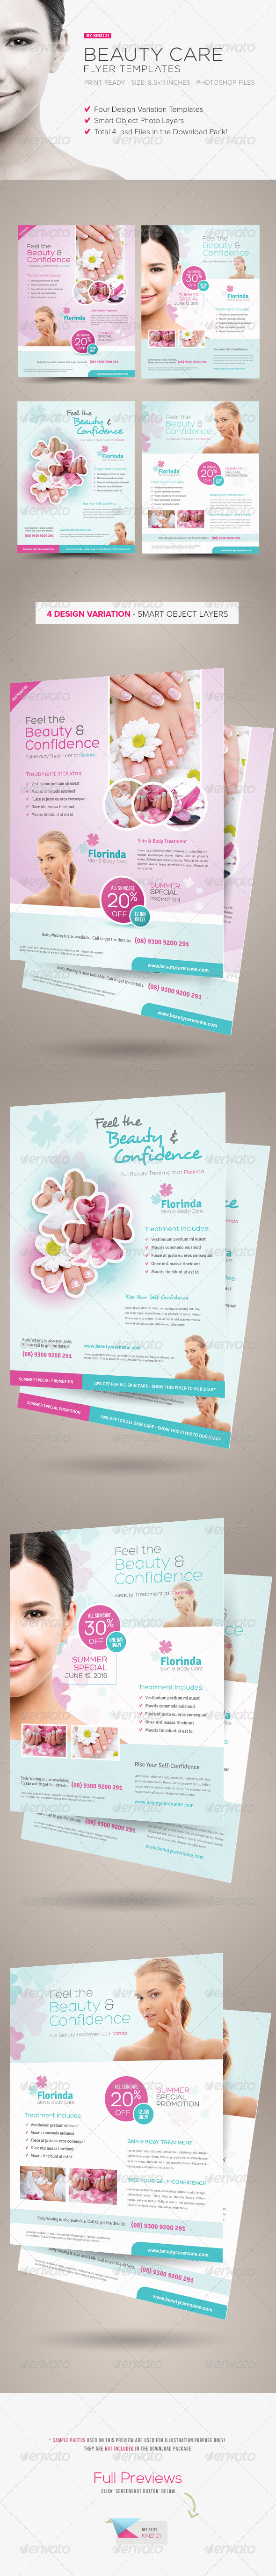 Beauty Care Flyer Templates - Corporate Flyers